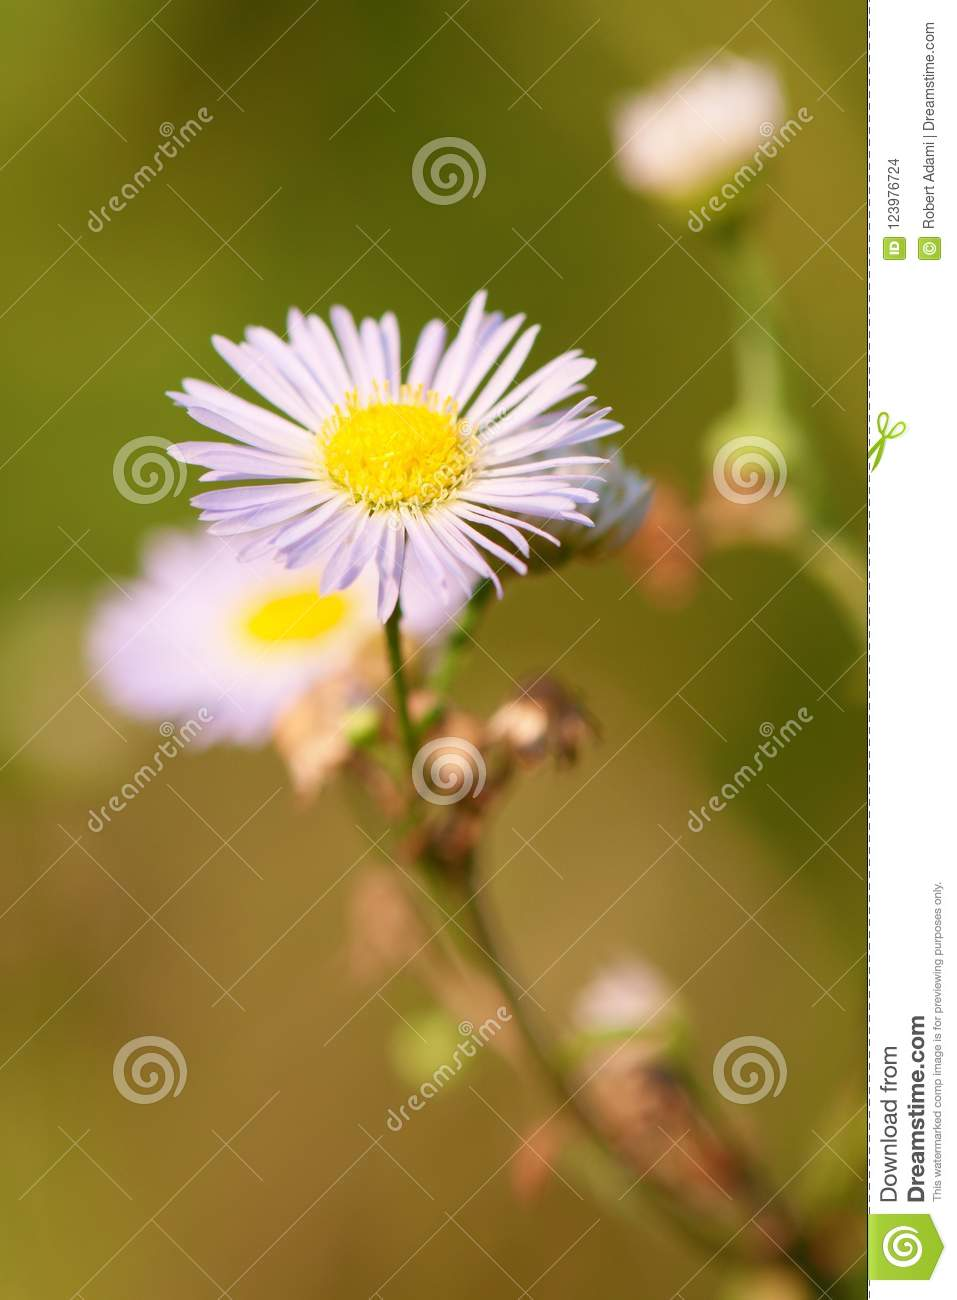 White flowers camomile in the meadow close-up